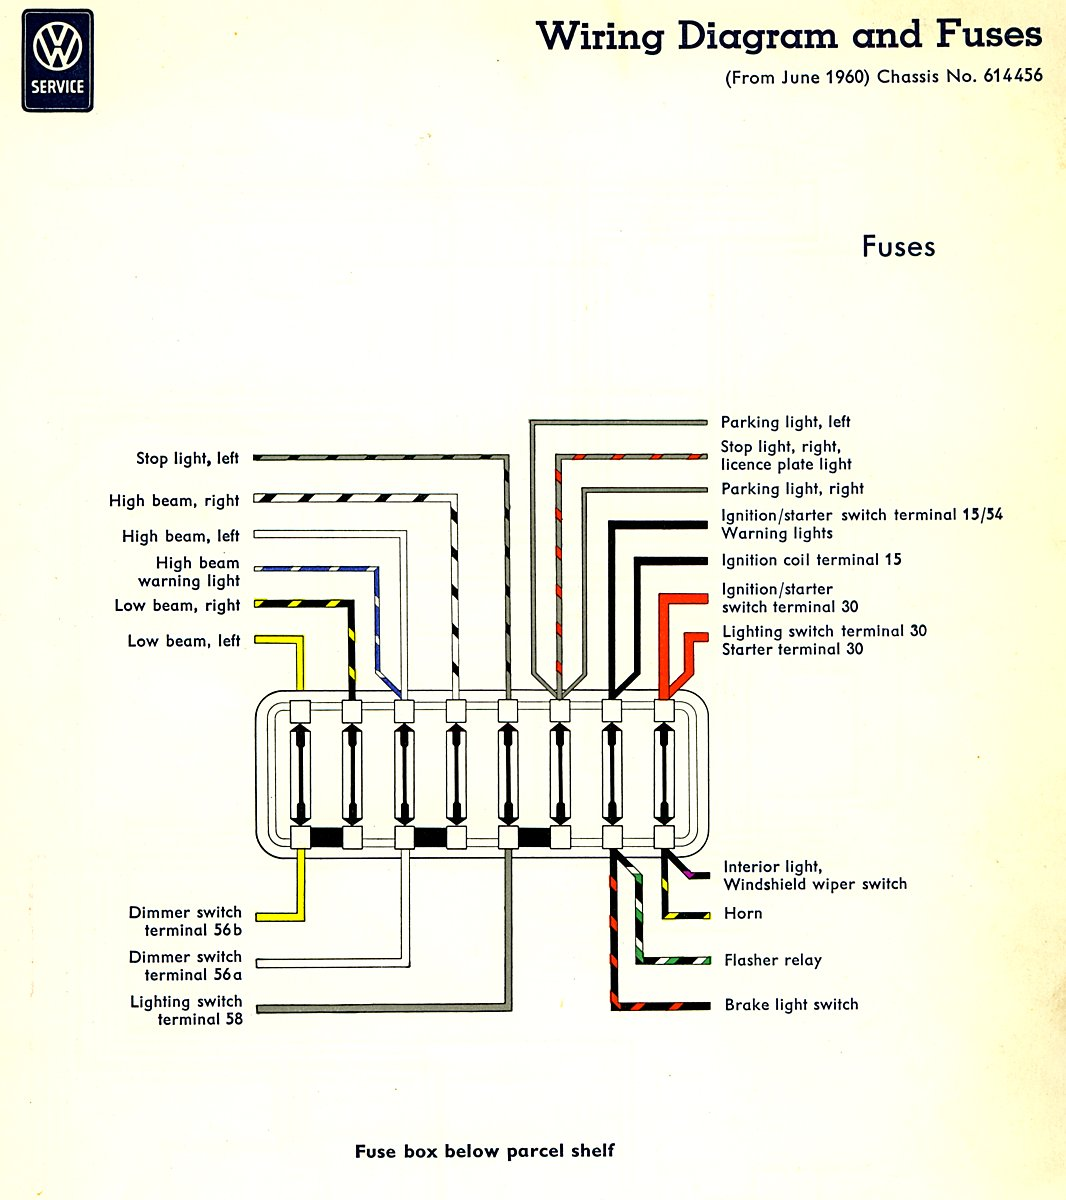 hight resolution of 1967 vw beetle fuse box wiring diagram completed wiring diagrams 2004 vw beetle fuse diagram 1967